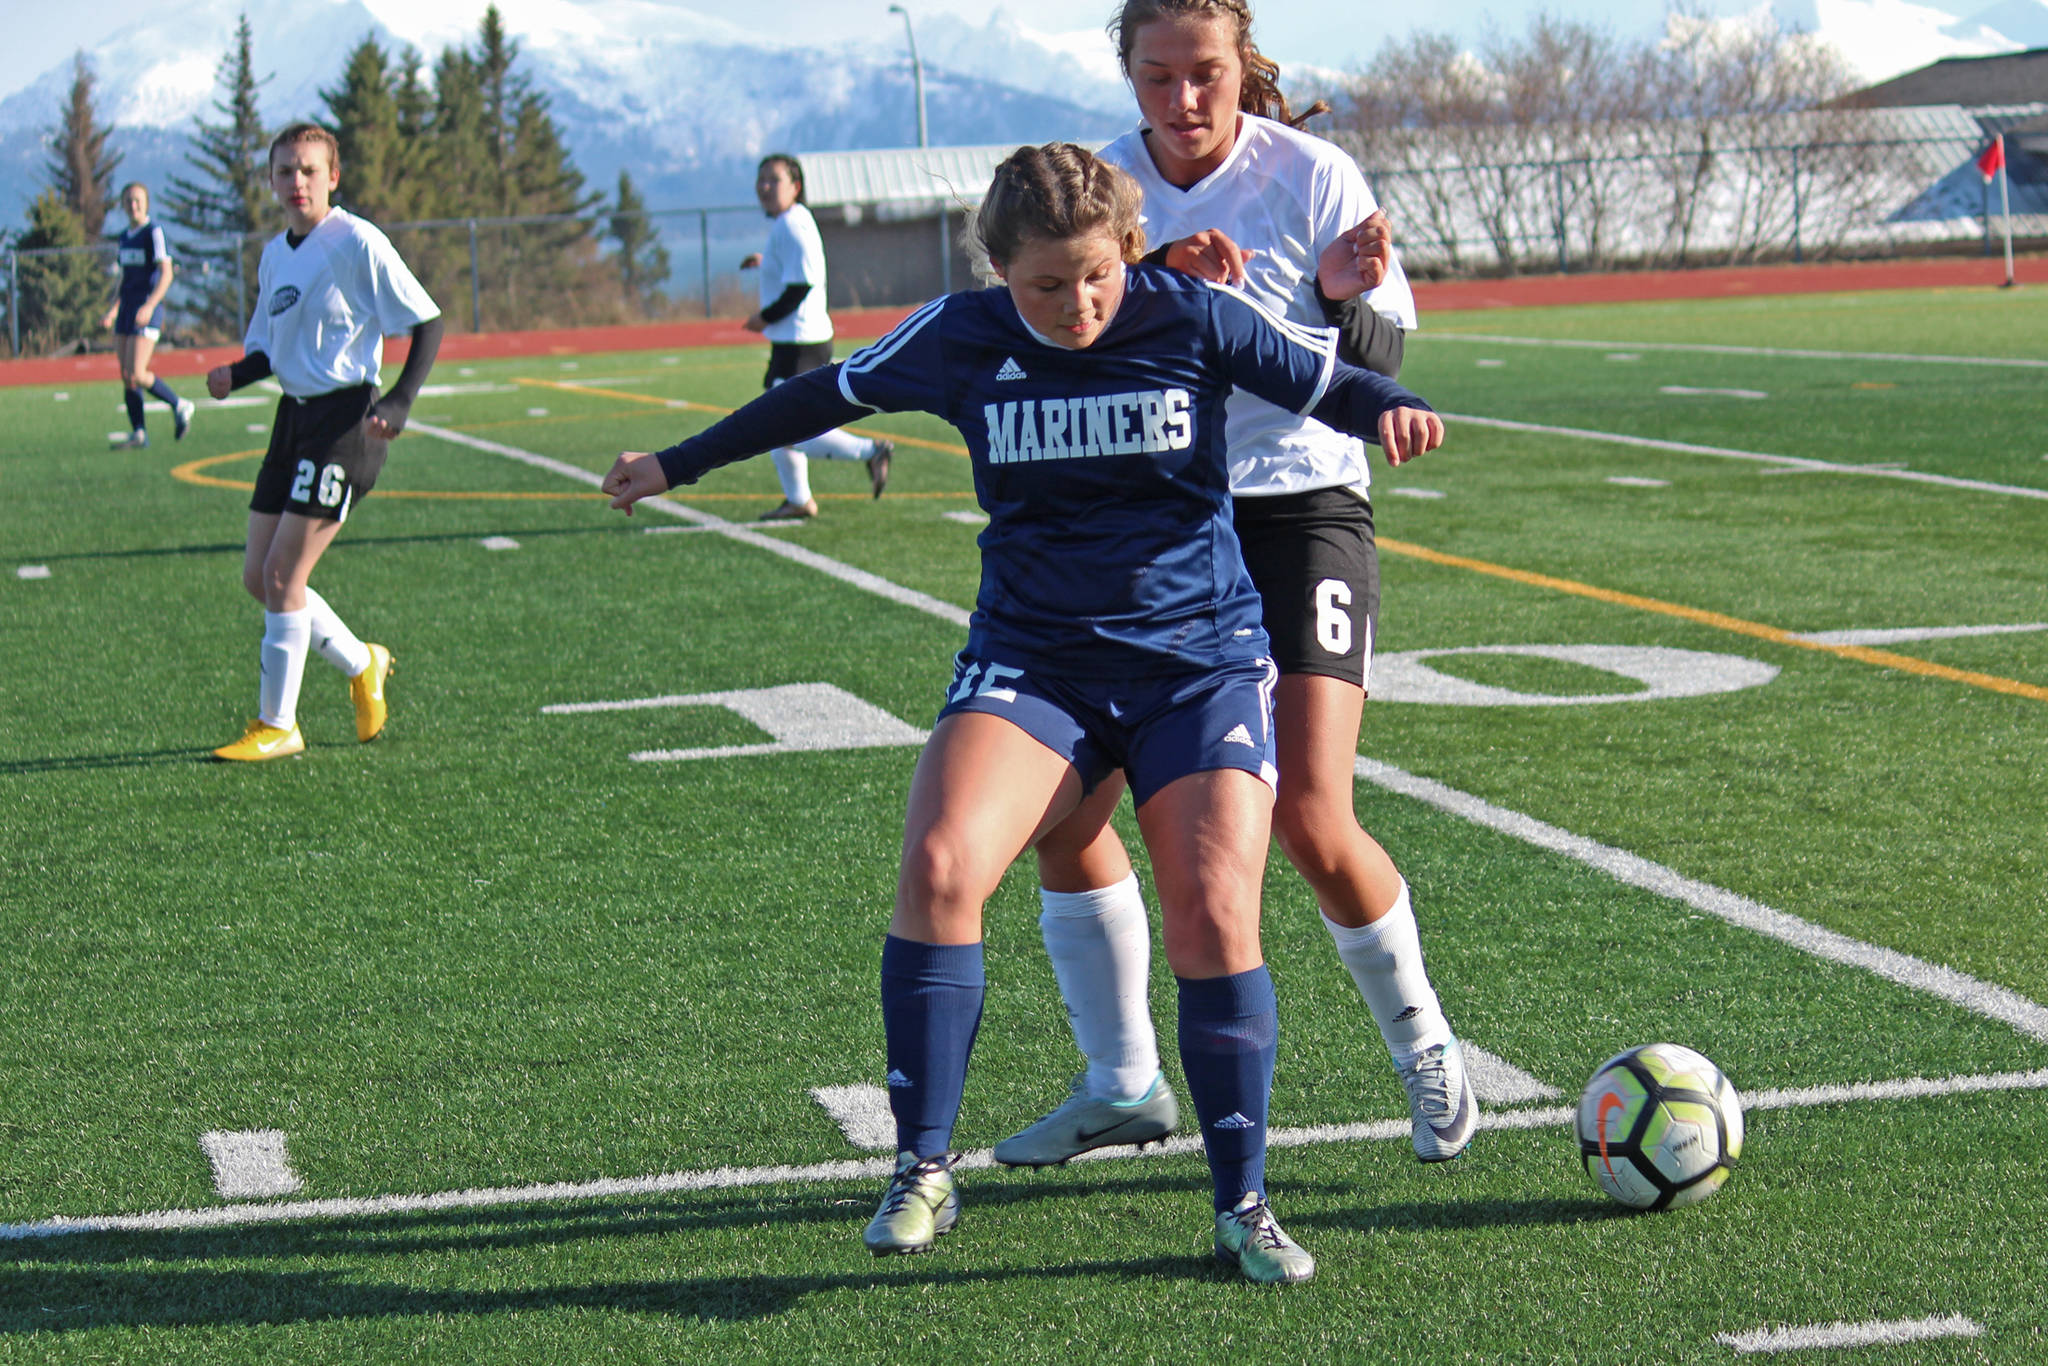 Homer's Rylee Doughty gets in front of Nikiski's Emma Wik while battling for the ball during a Tuesday, April 23, 2019 game at Homer High School in Homer, Alaska. (Photo by Megan Pacer/Homer News)